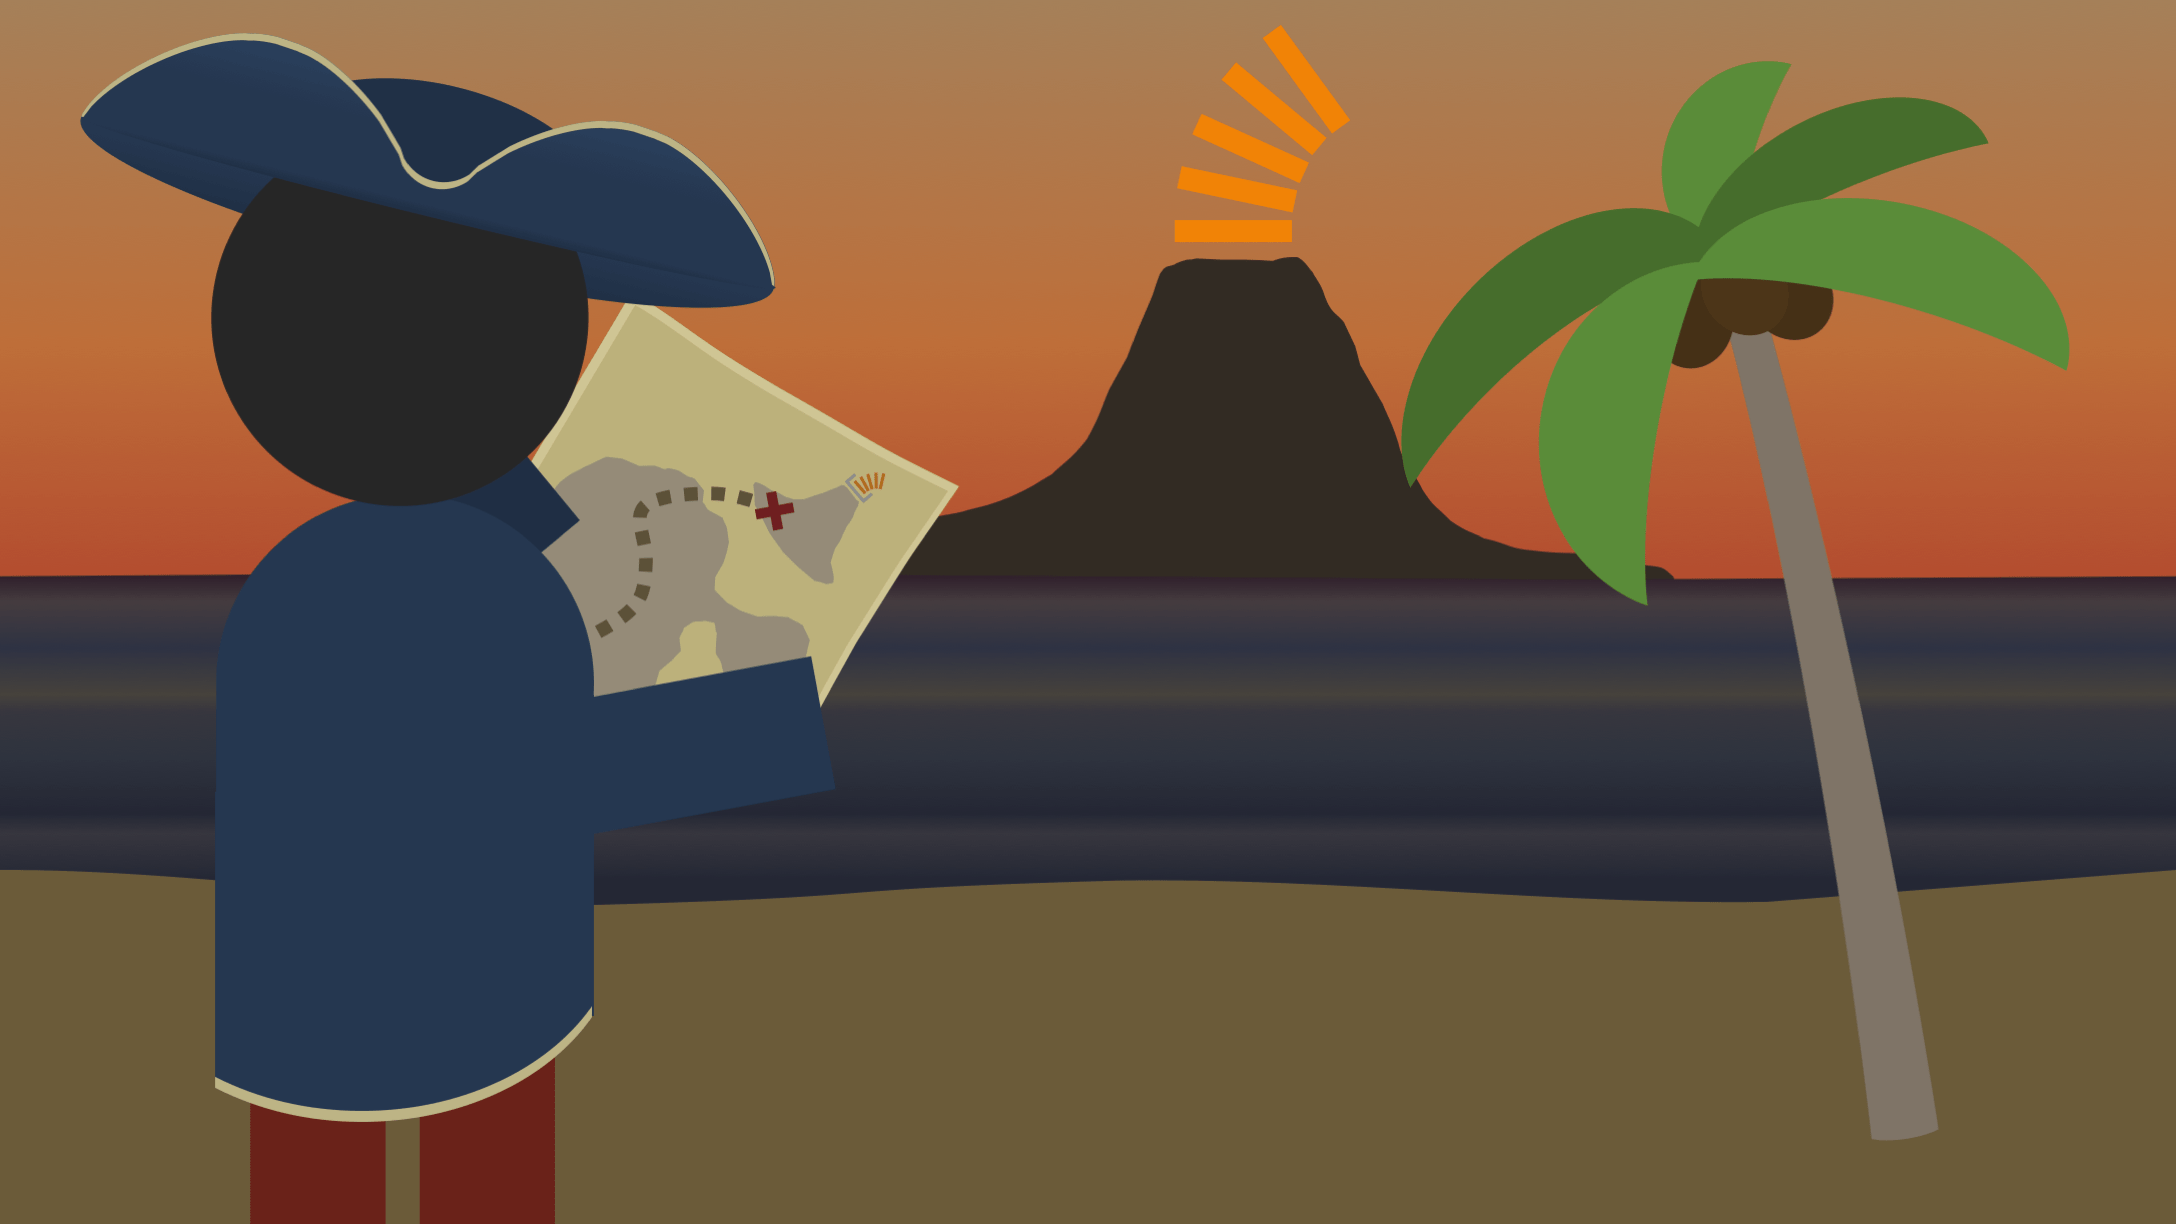 A pirate examines a treasure map